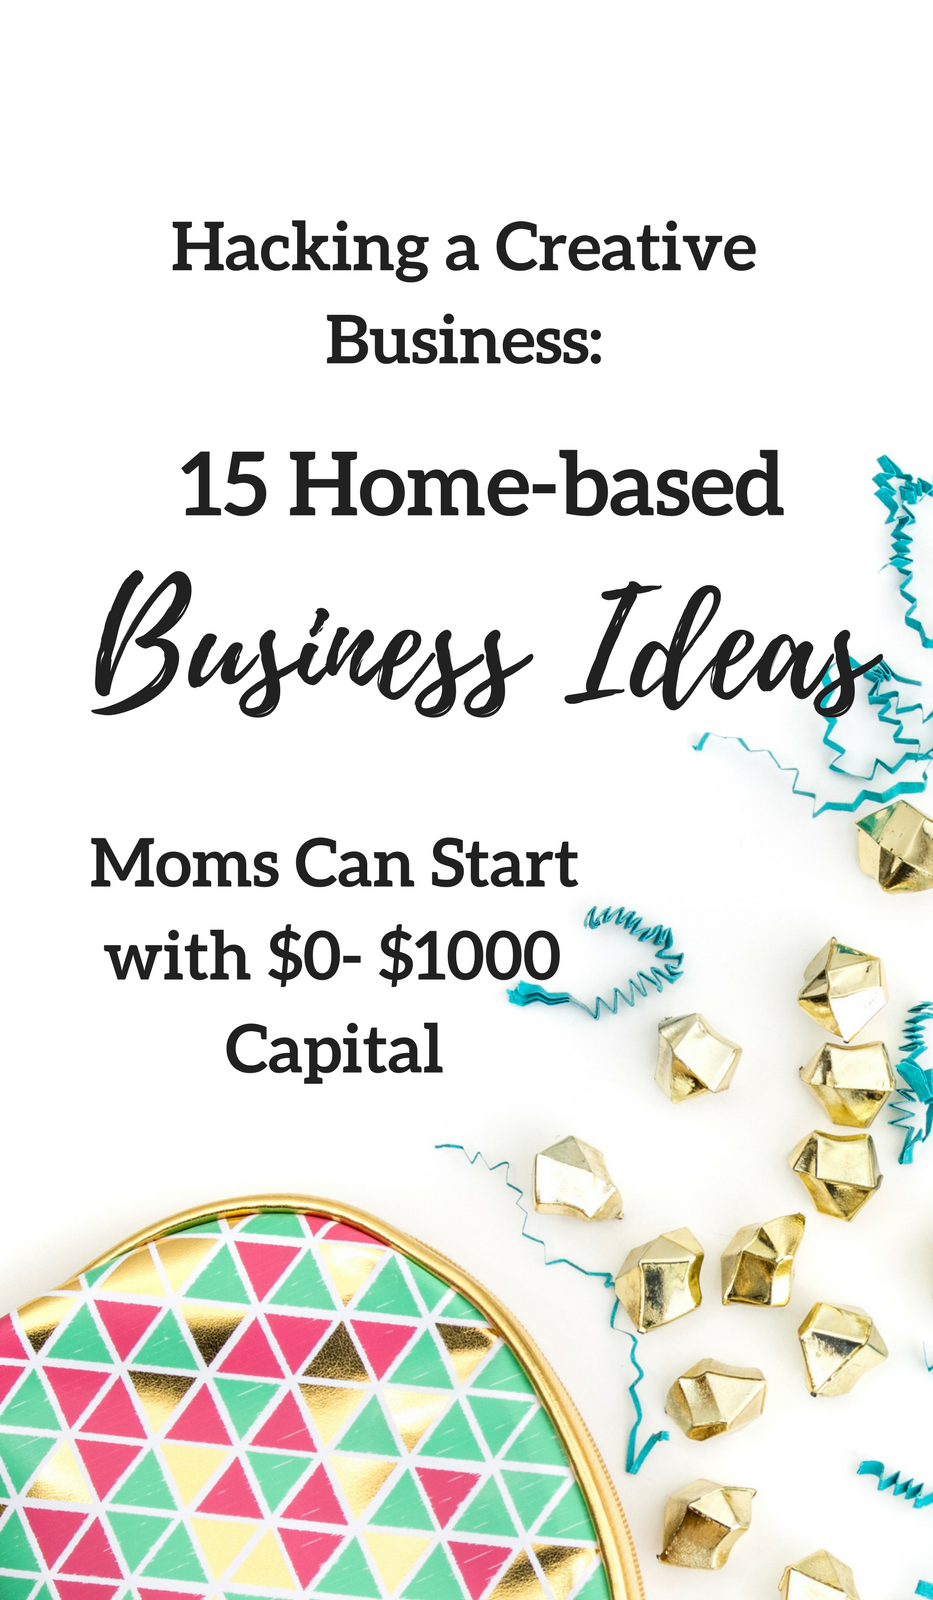 Modern Home Based Businesses To Start Motif - Home Decorating ...